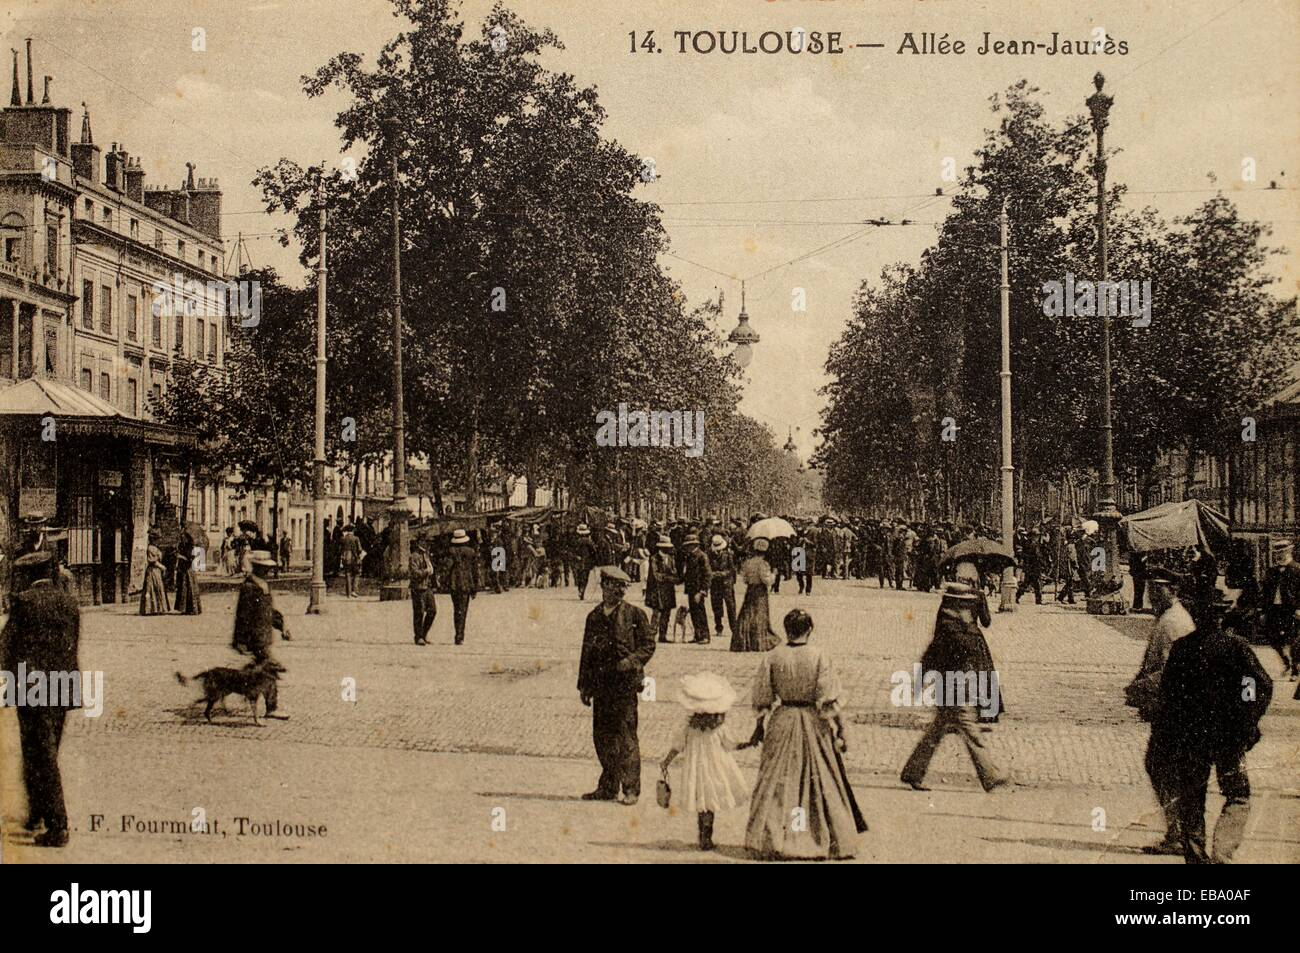 Postcard around 1890 all e jean jaur s toulouse france - Cabinet ophtalmologie jean jaures toulouse ...